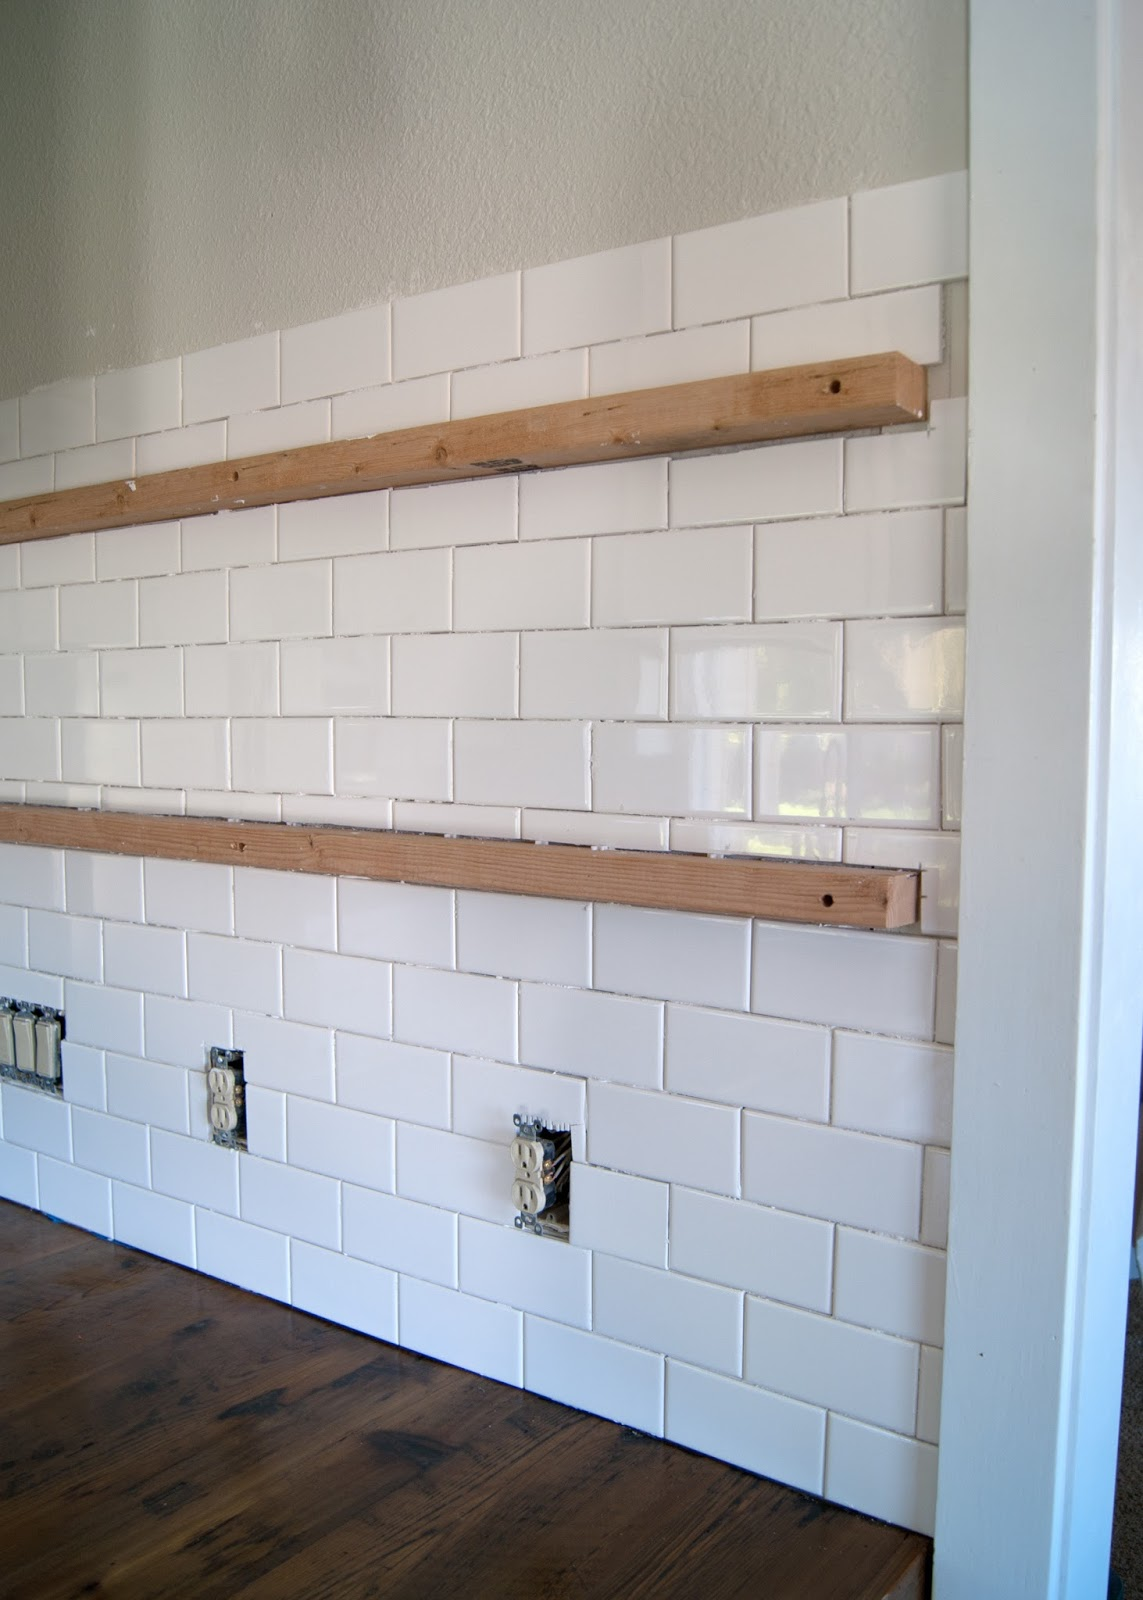 Subway tile installation tips on grouting with fusion pro im doublecrazyfo Choice Image